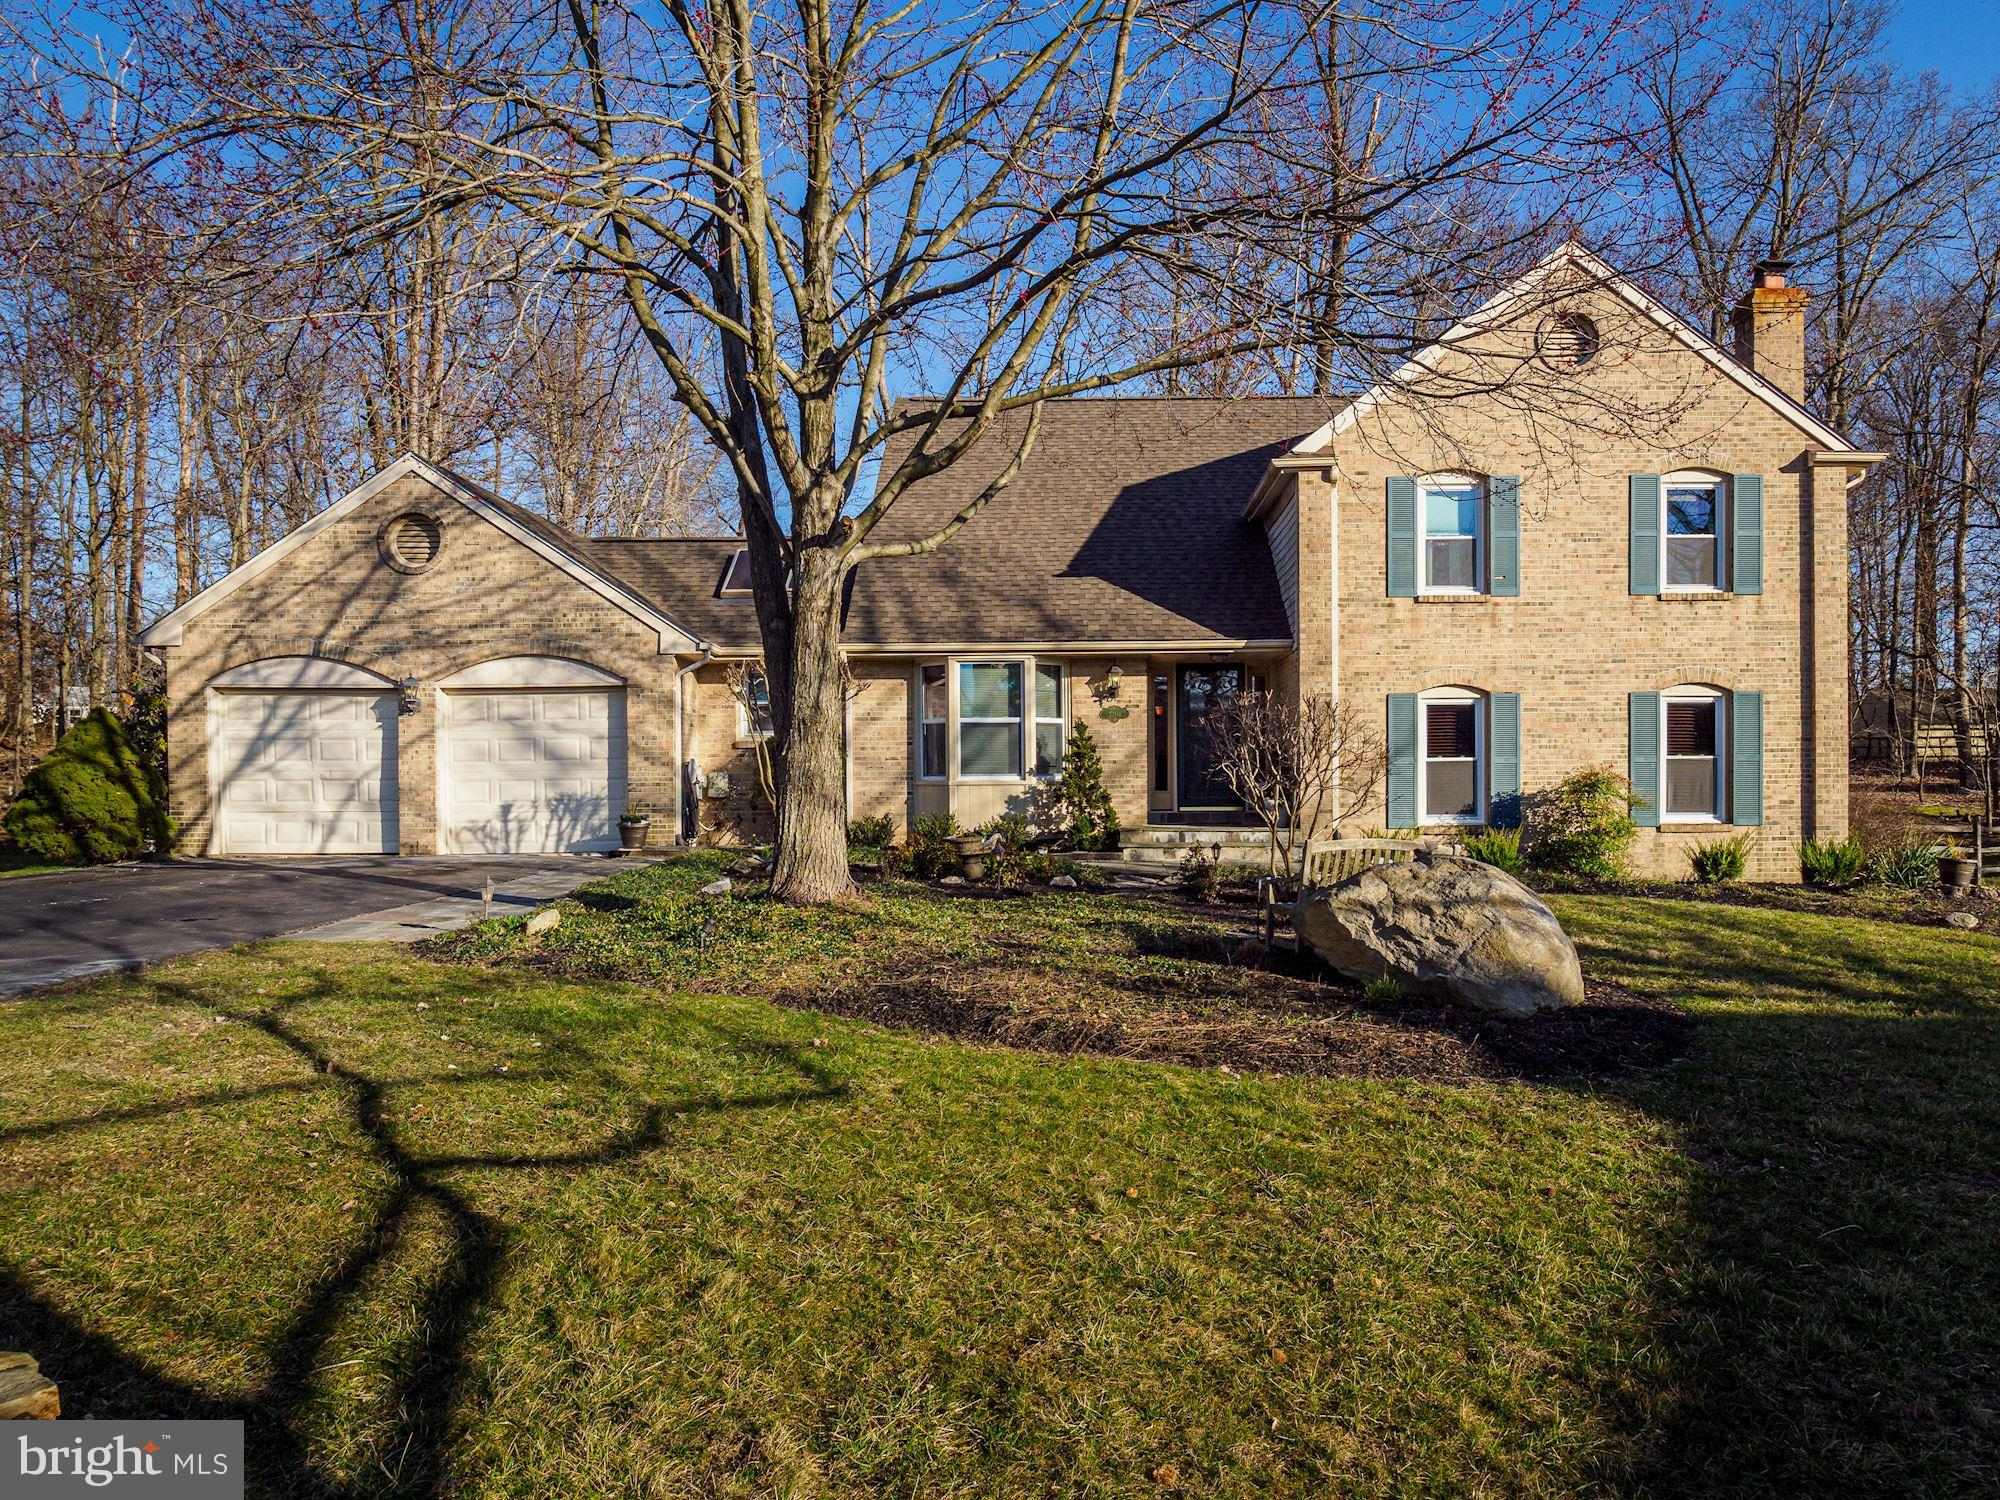 2204 GAYWOODS COURT, SILVER SPRING, MD 20906